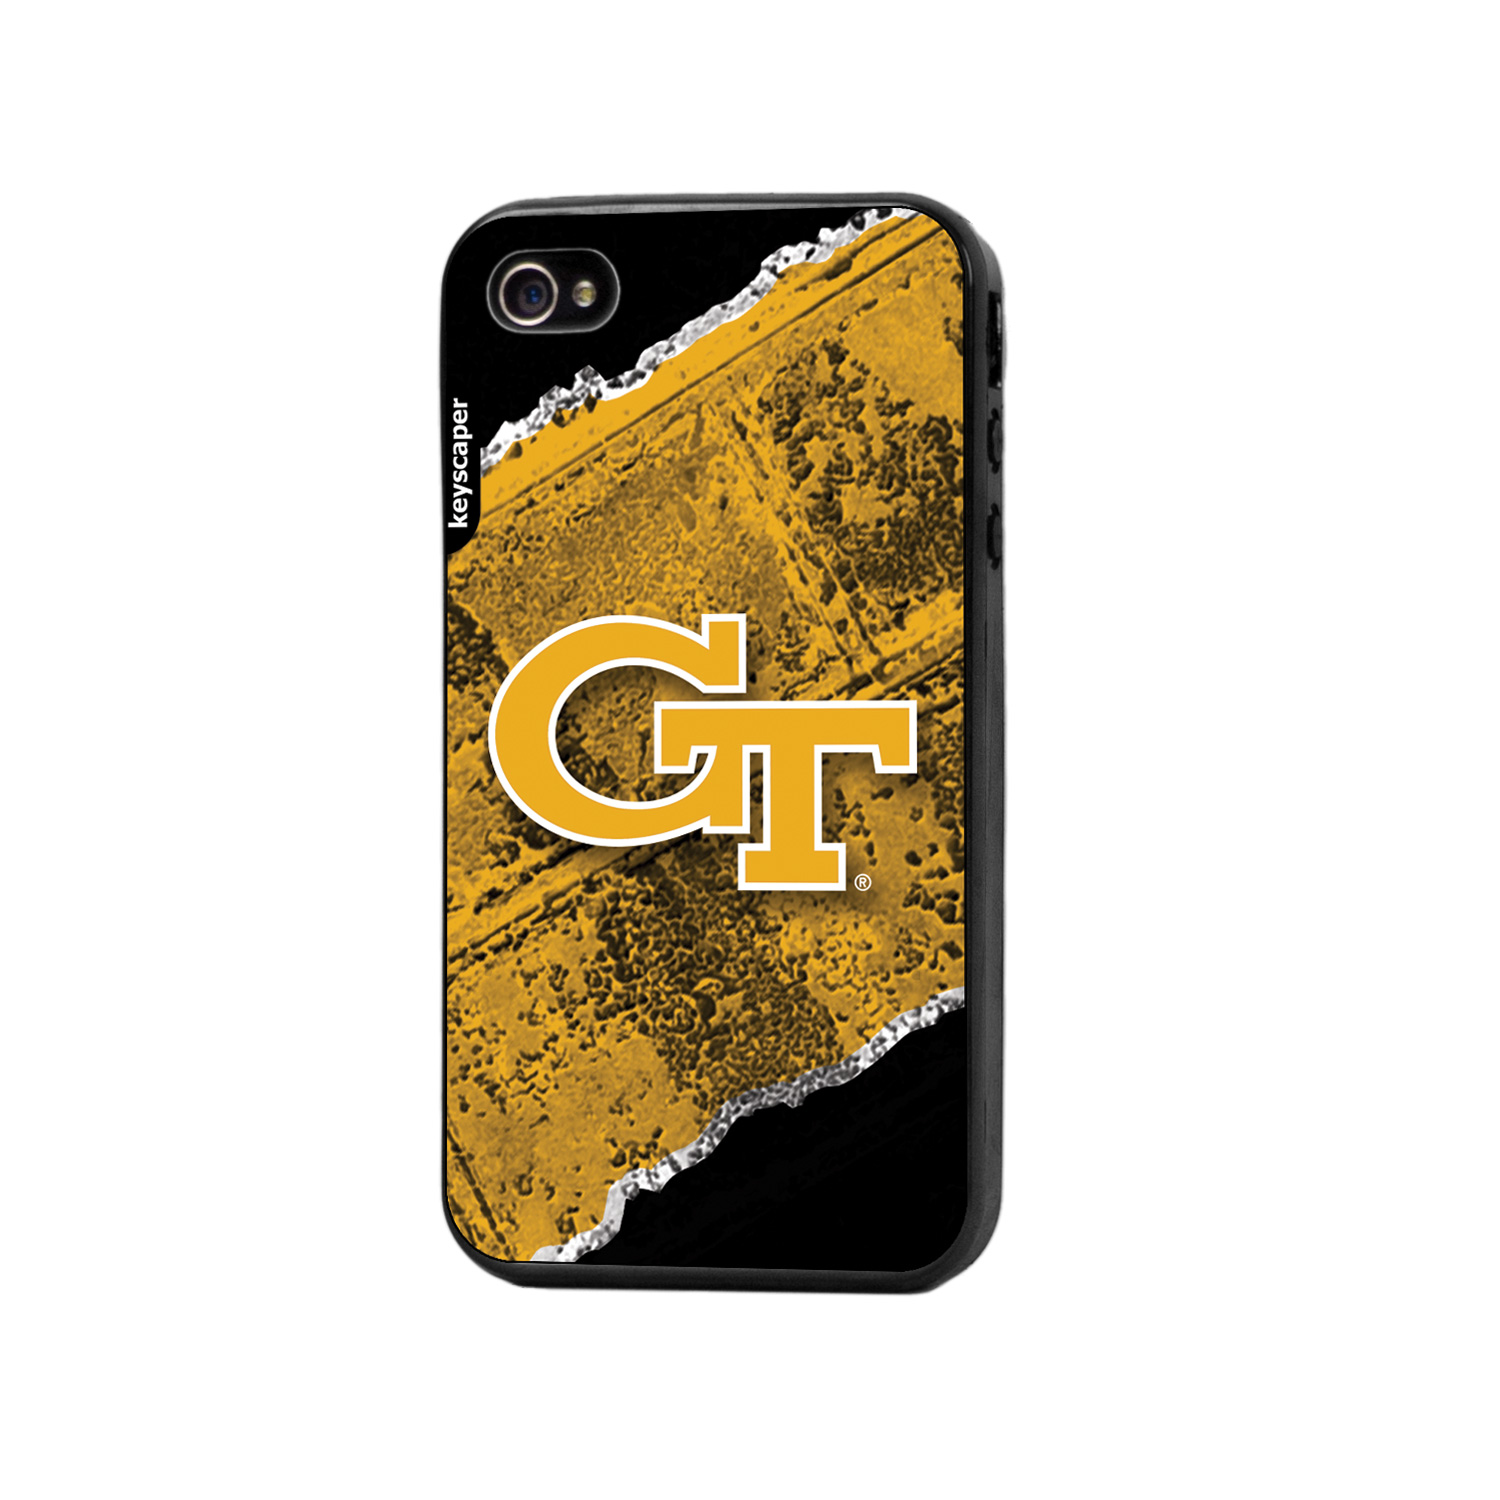 Georgia Tech iPhone 4 / iPhone 4s Bump Case NCAA